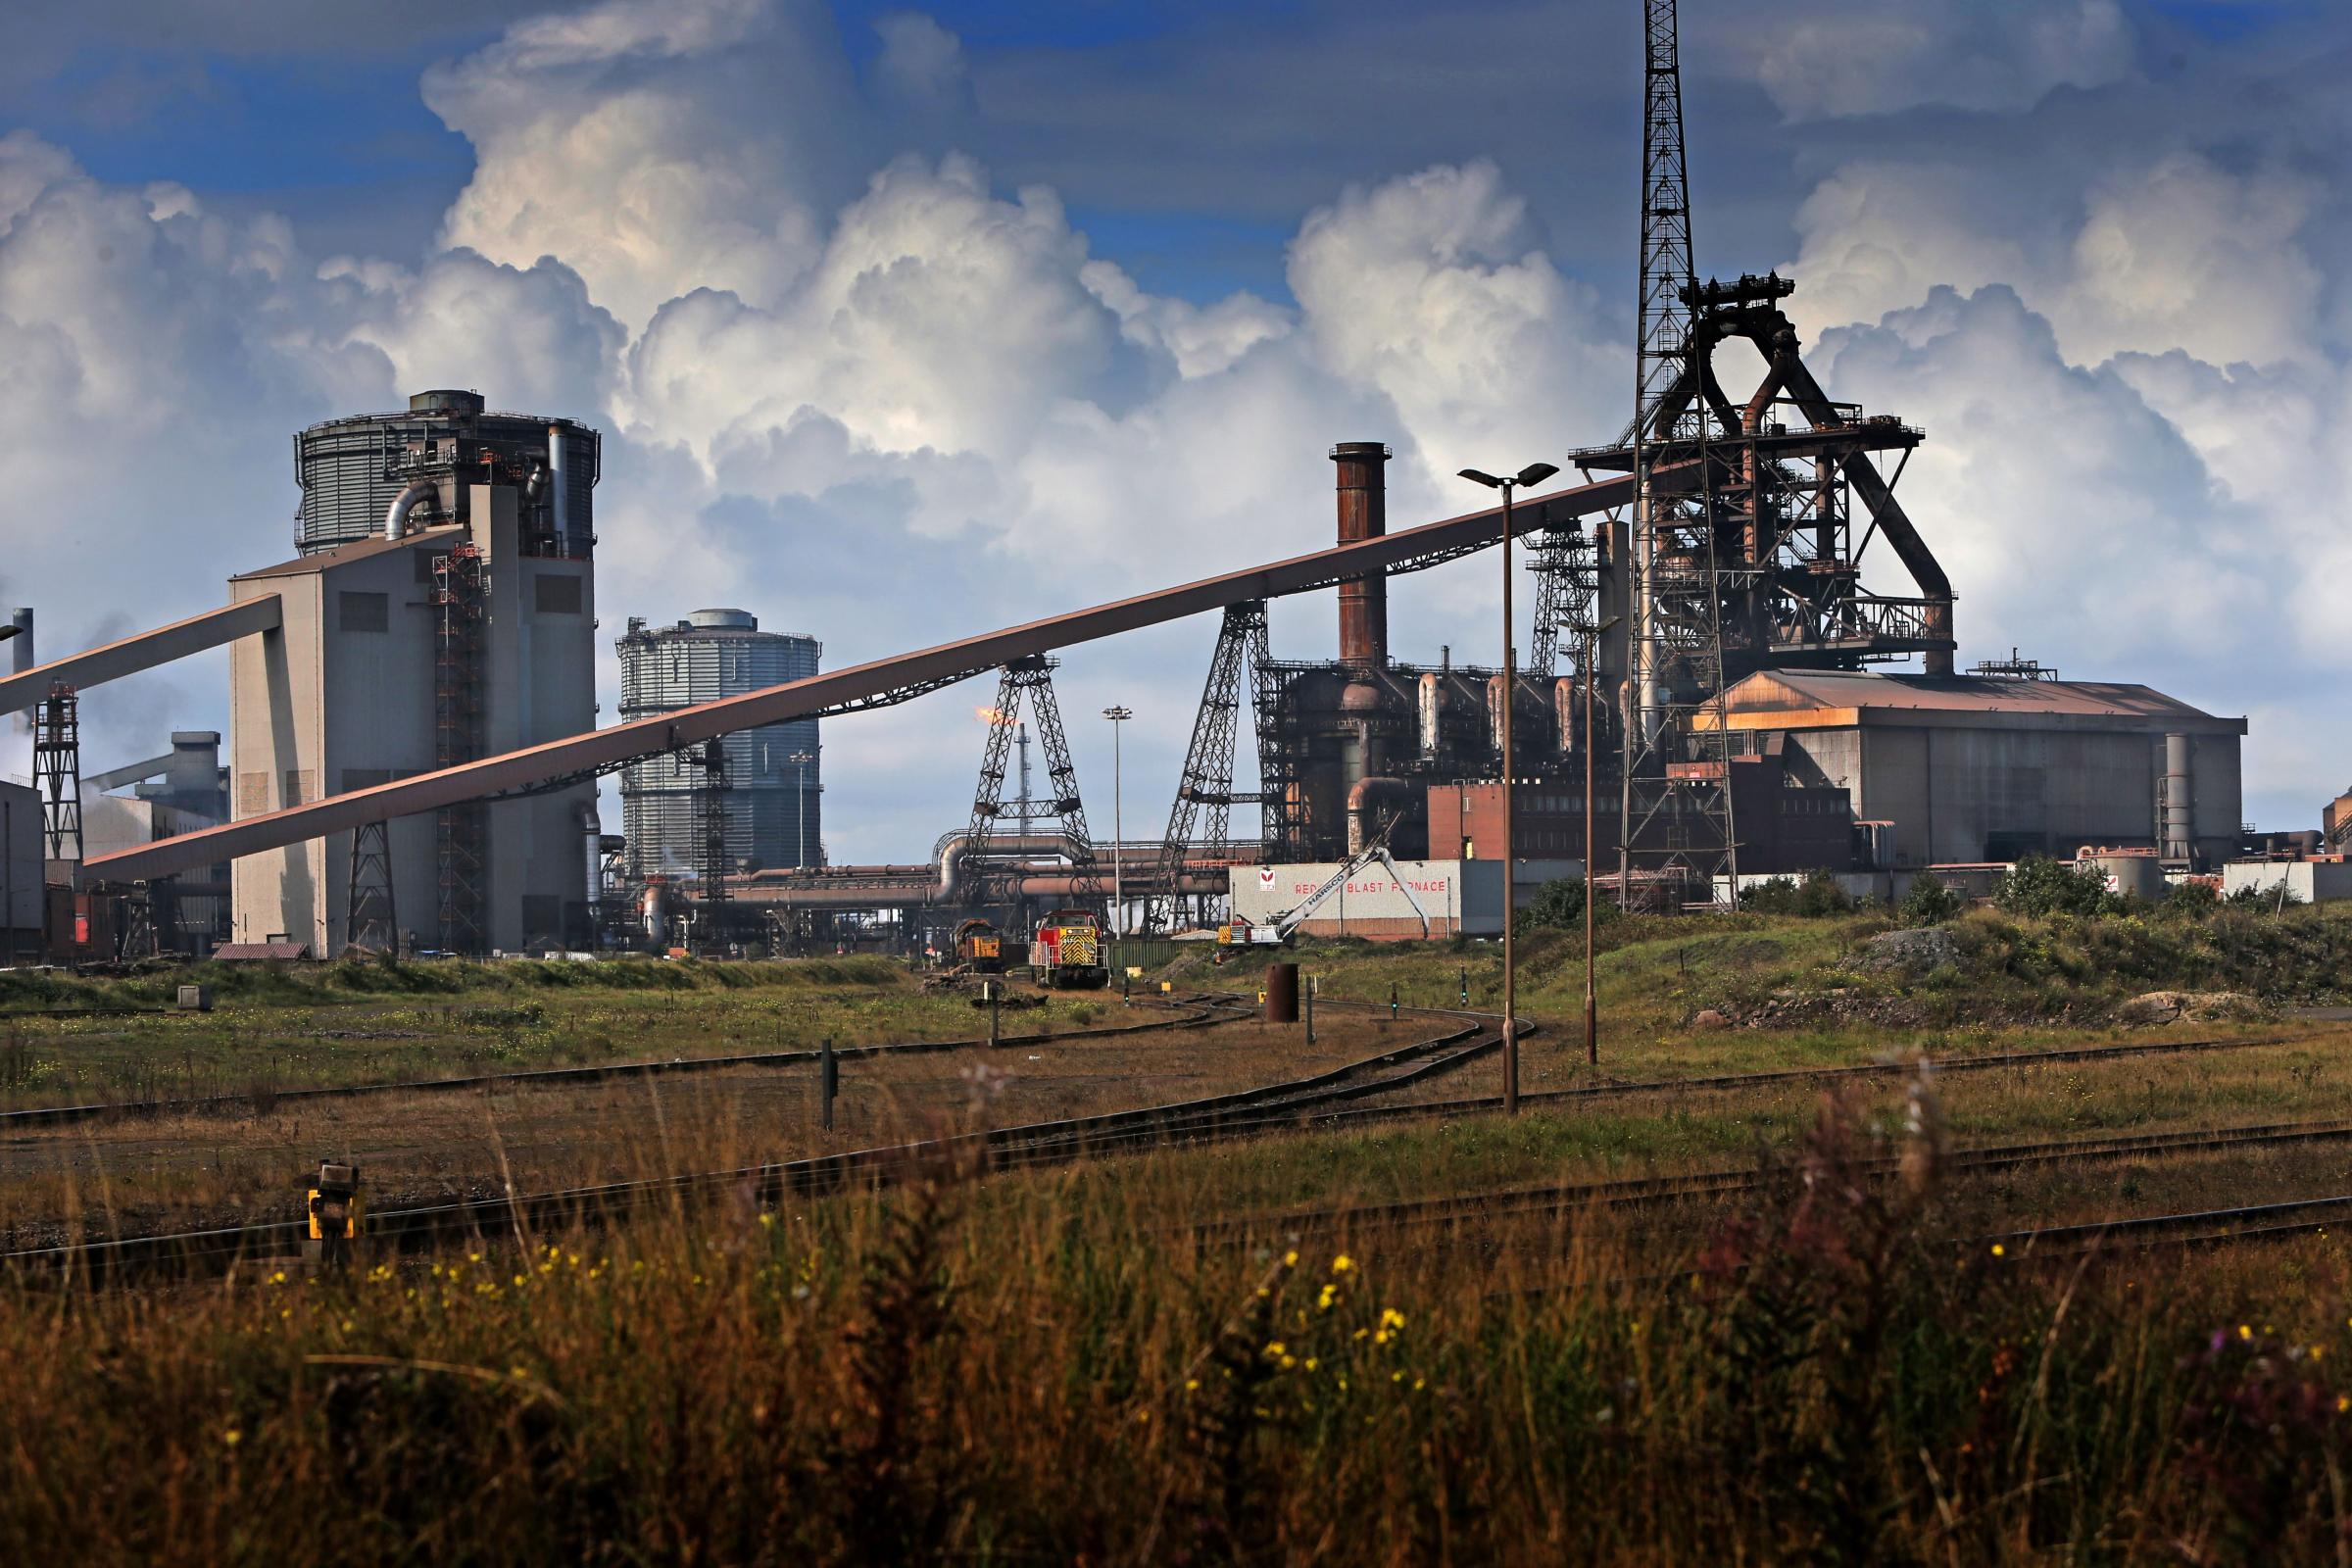 JOBS: The SSI Redcar steel plant closed in 2015 with the loss of 1,700 jobs. Picture: TOM BANKS